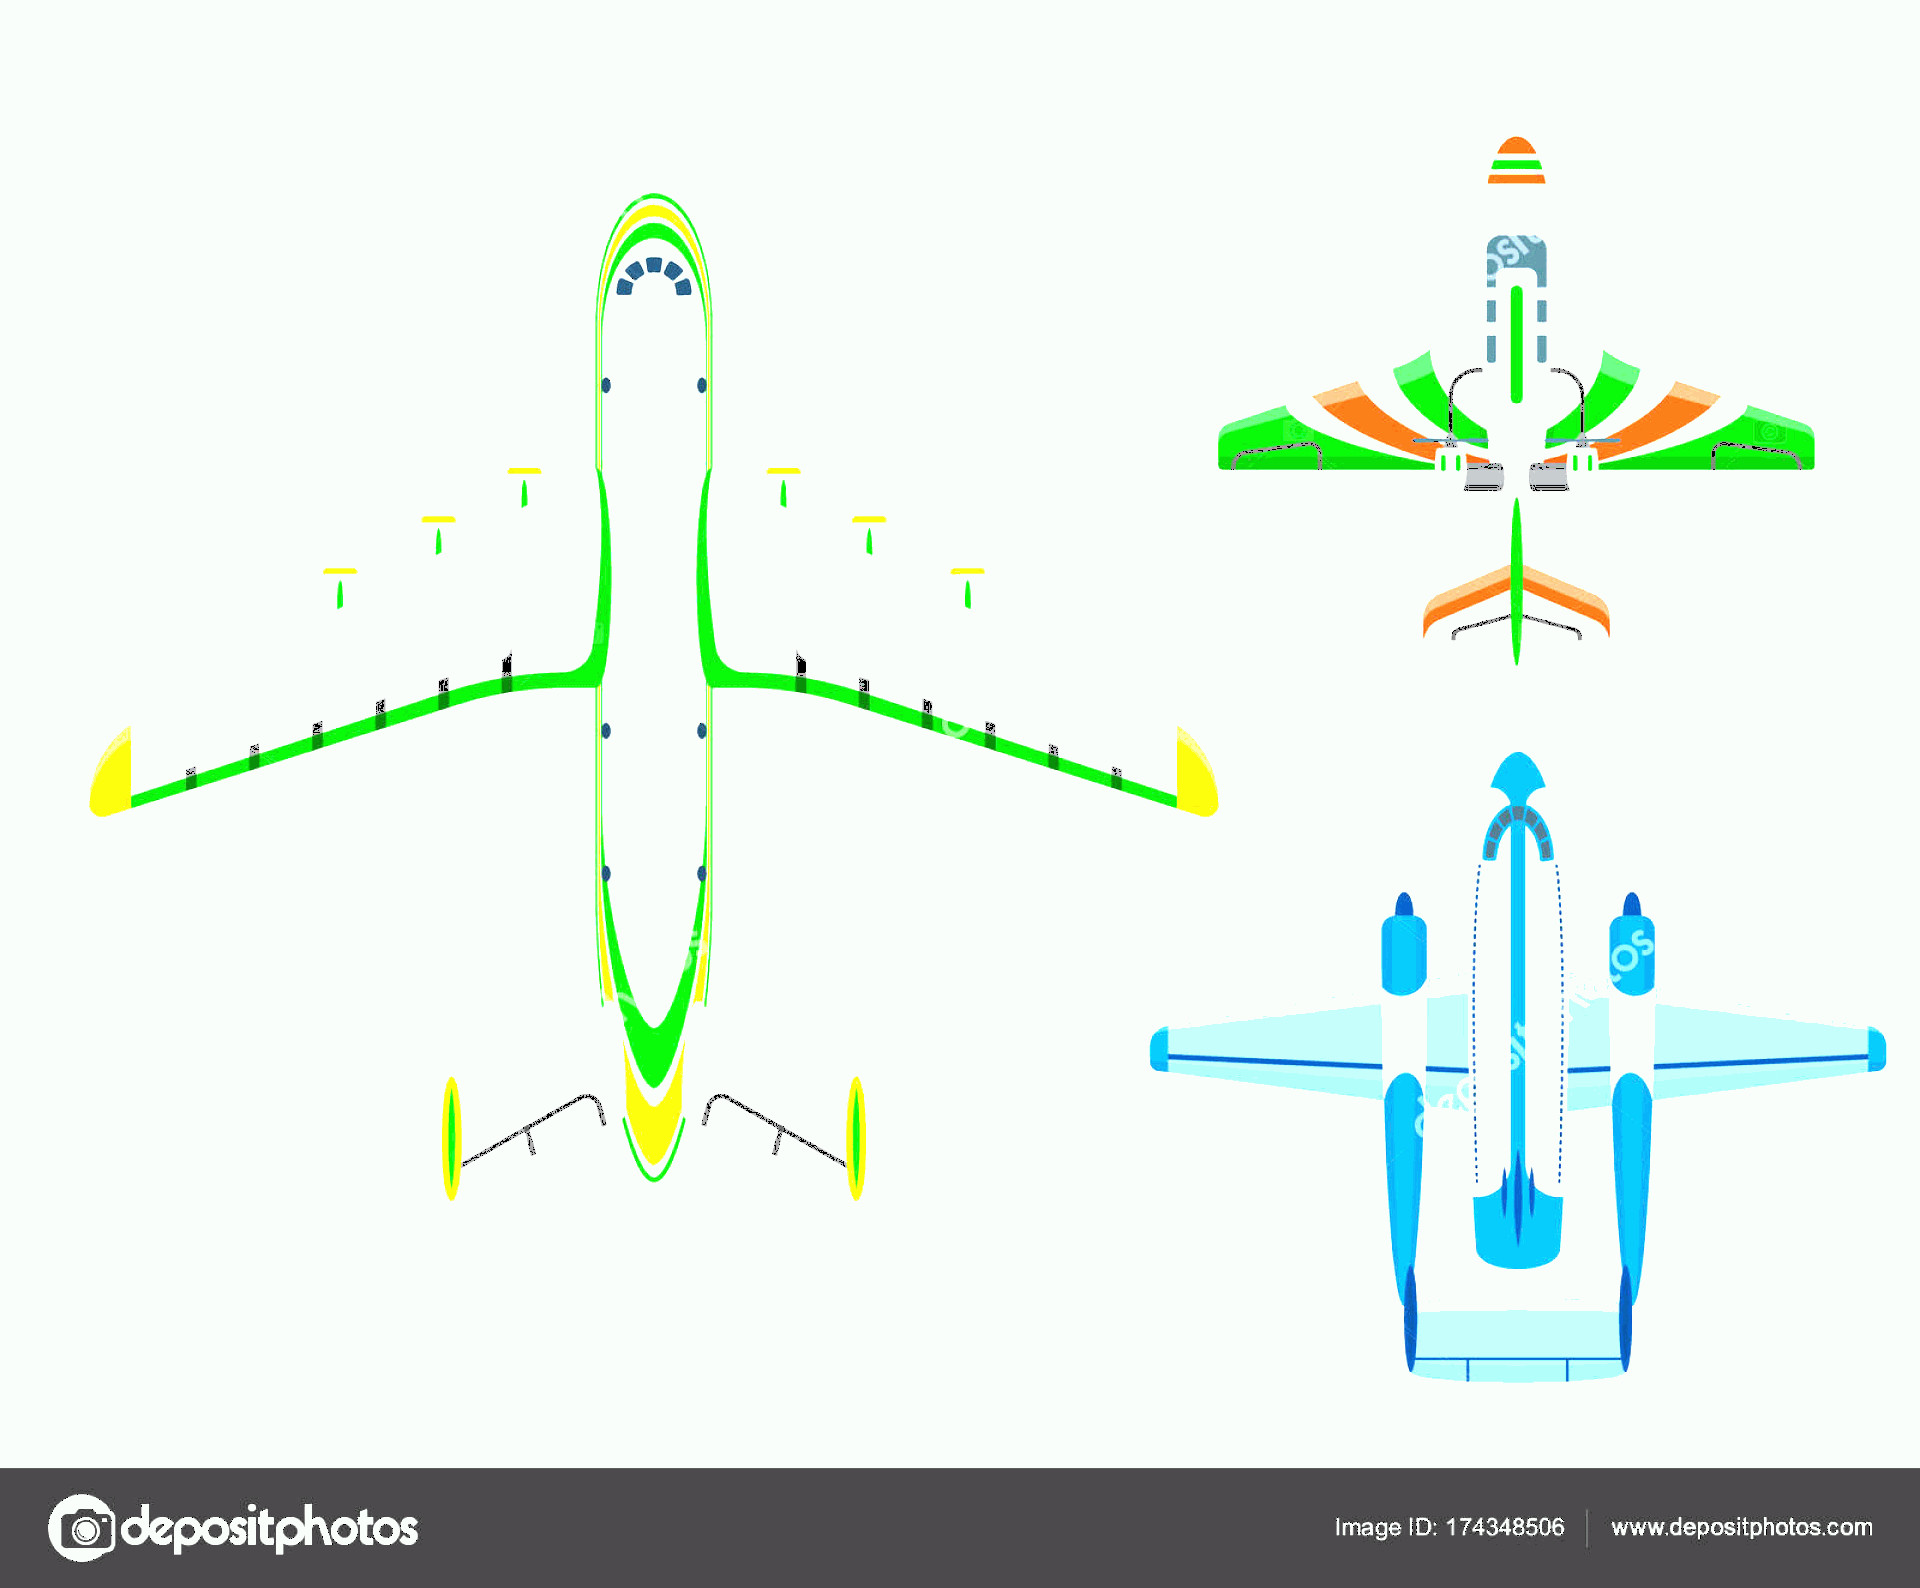 Aviation Vector Designs: Stock Illustration Vector Airplane Illustration Top View